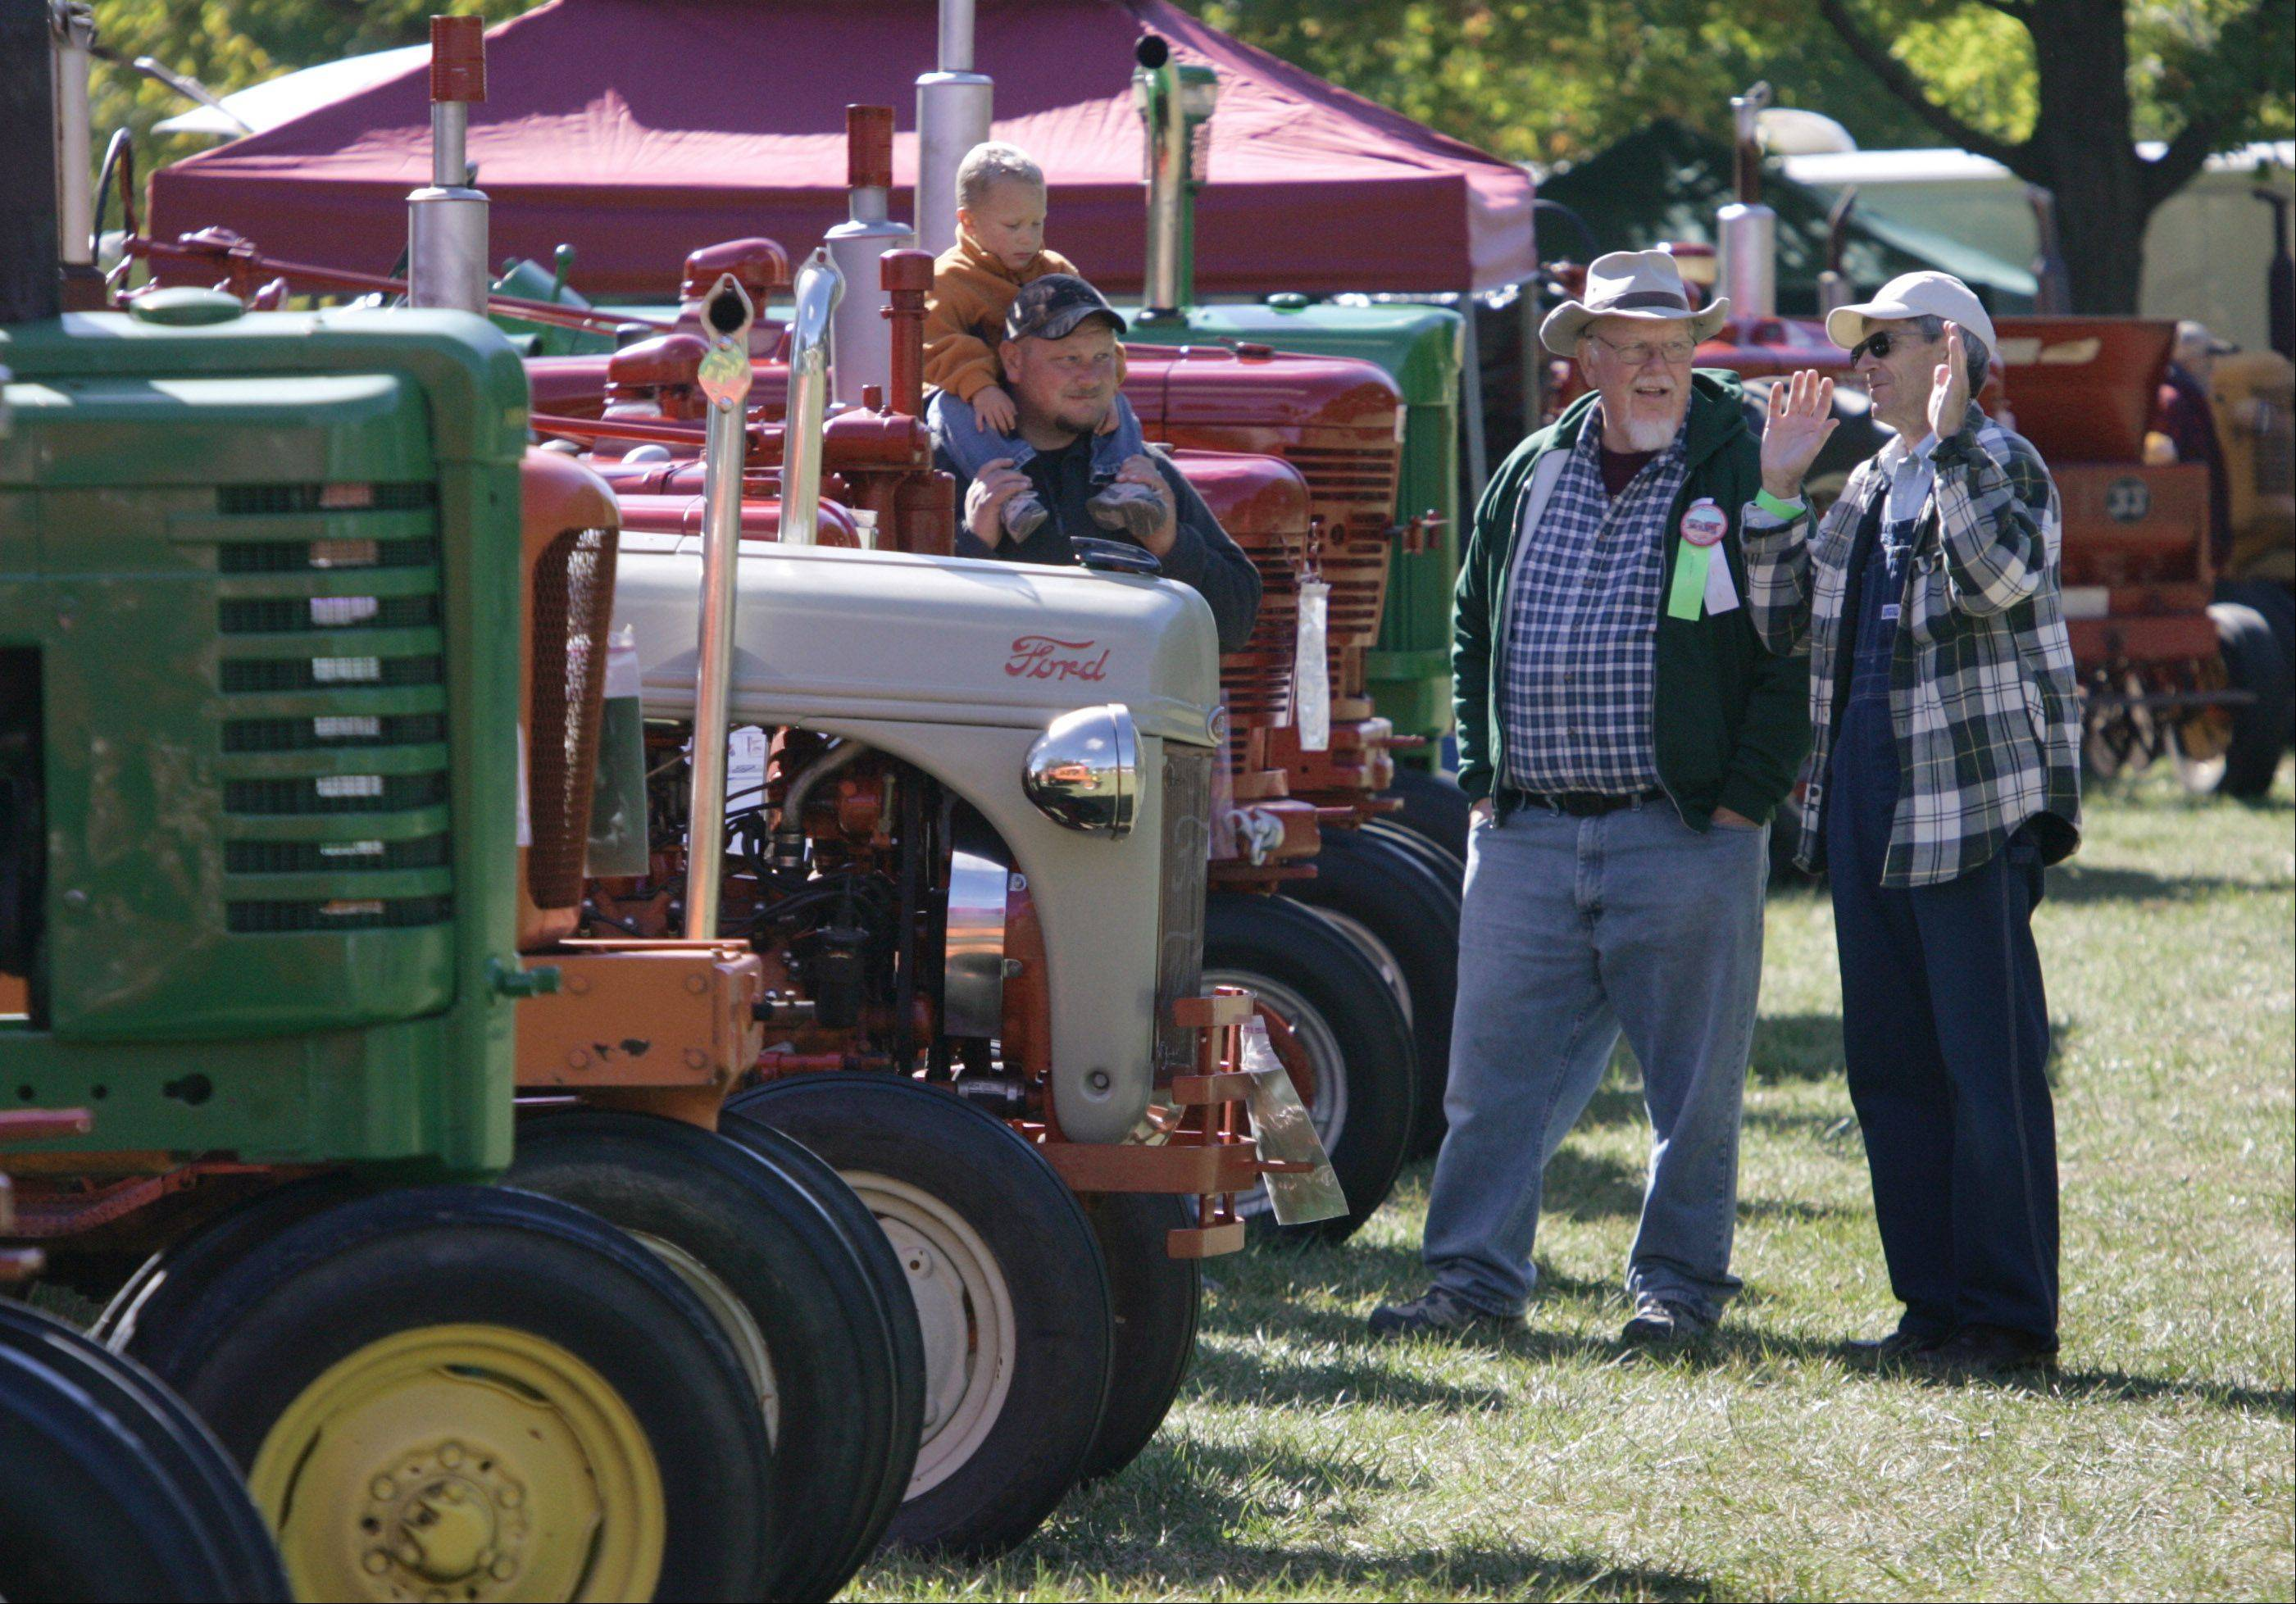 There are plenty of old tractors to see at the Farm Heritage Festival at Lakewood Forest Preserve near Wauconda.